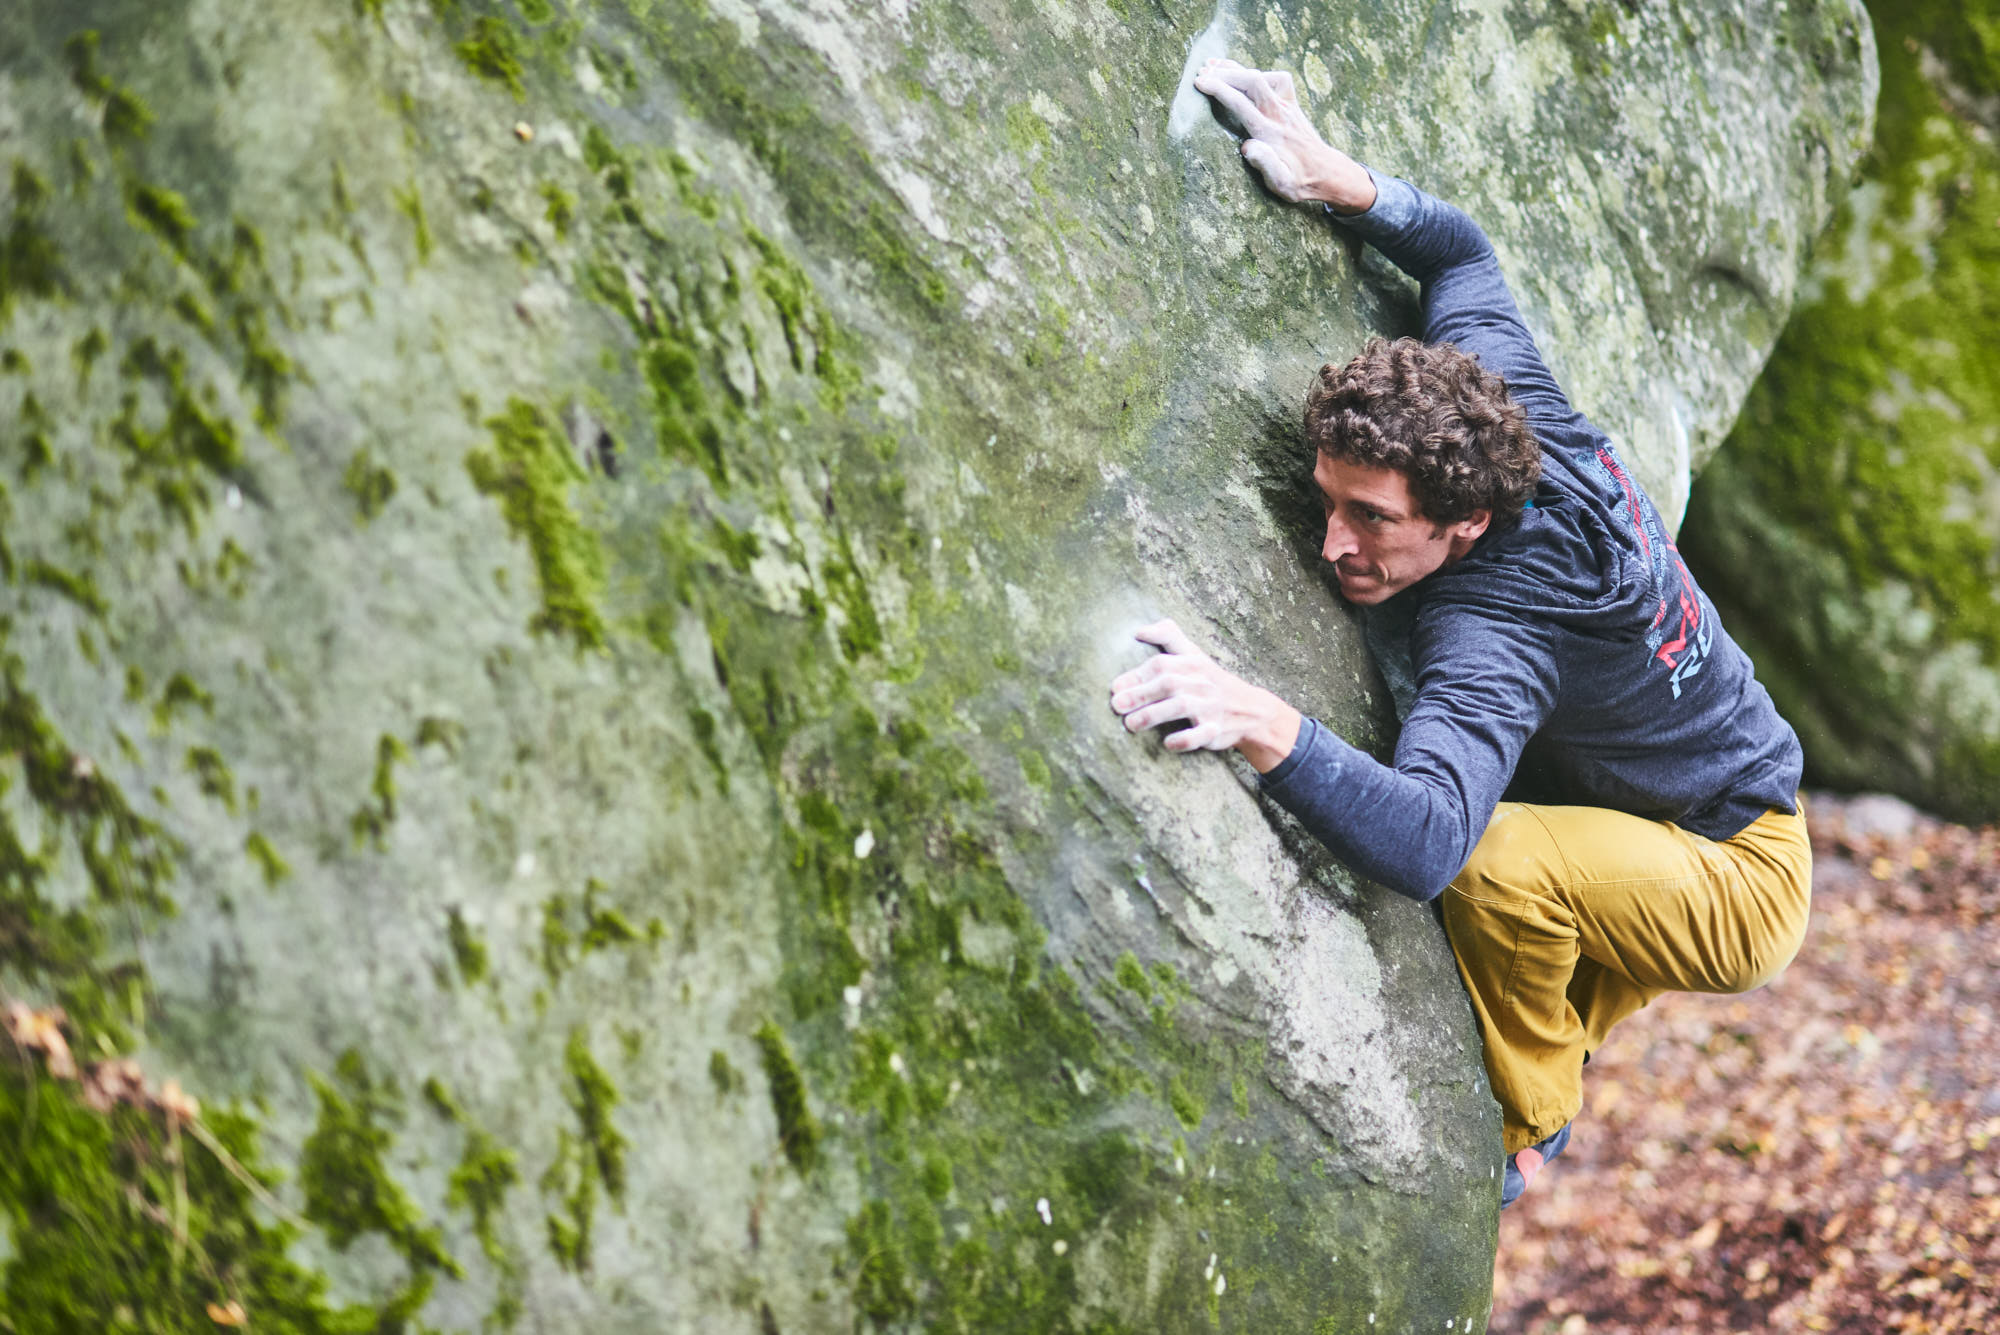 Guillaume Glairon Mondet climbing a hard boulder problem in Fontainebleau